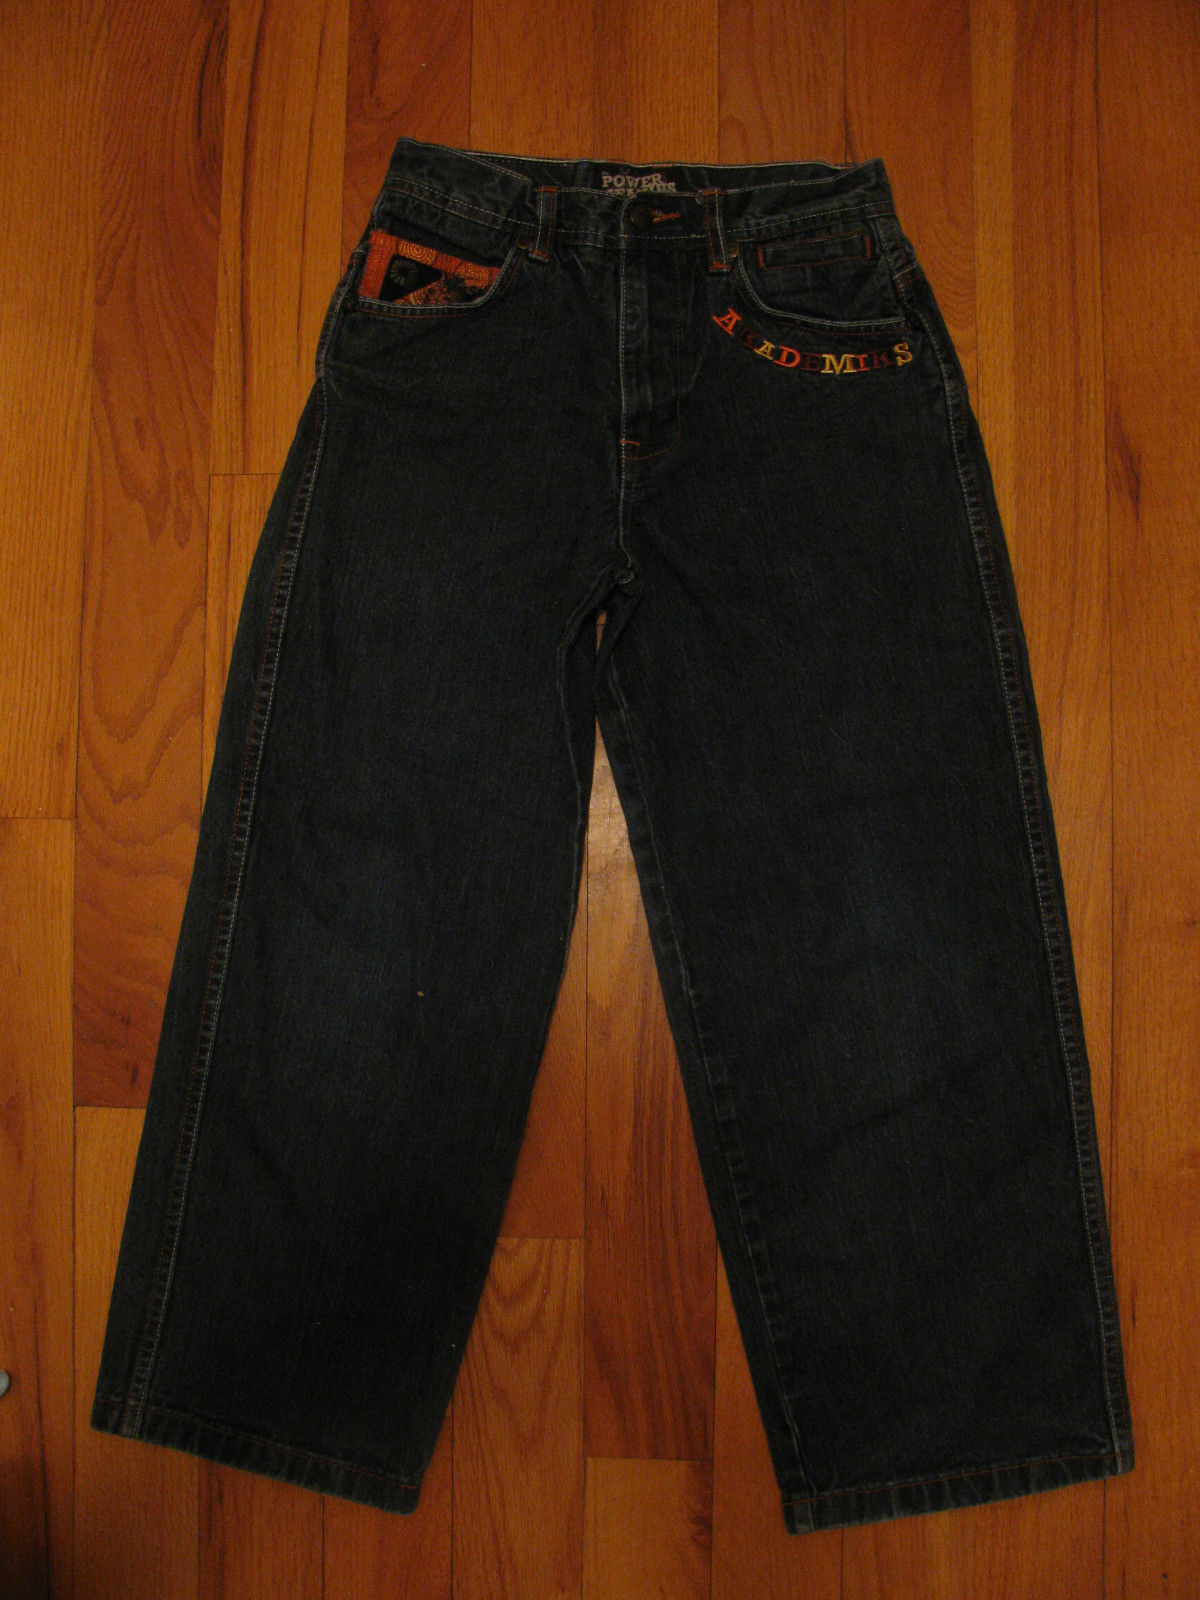 JEANS AKADEMIKS DENIUM JEANS THE POWER OF JEANIUS SIZE12 EMBELLISHED EMBROIRERY  image 2